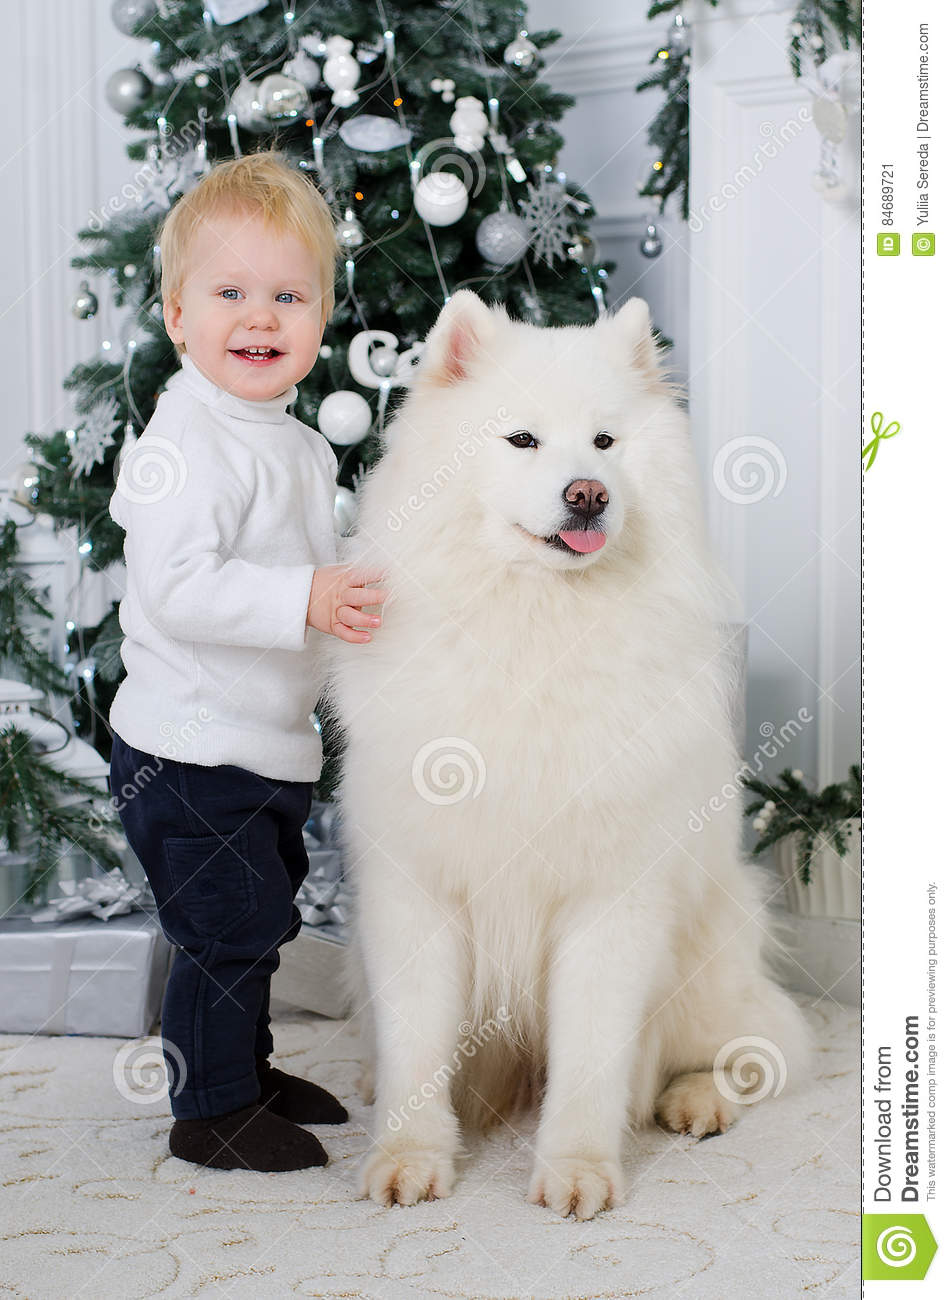 Boy Hugging A Big White Dog Stock Image - Image of happy, cheerful: 84689721